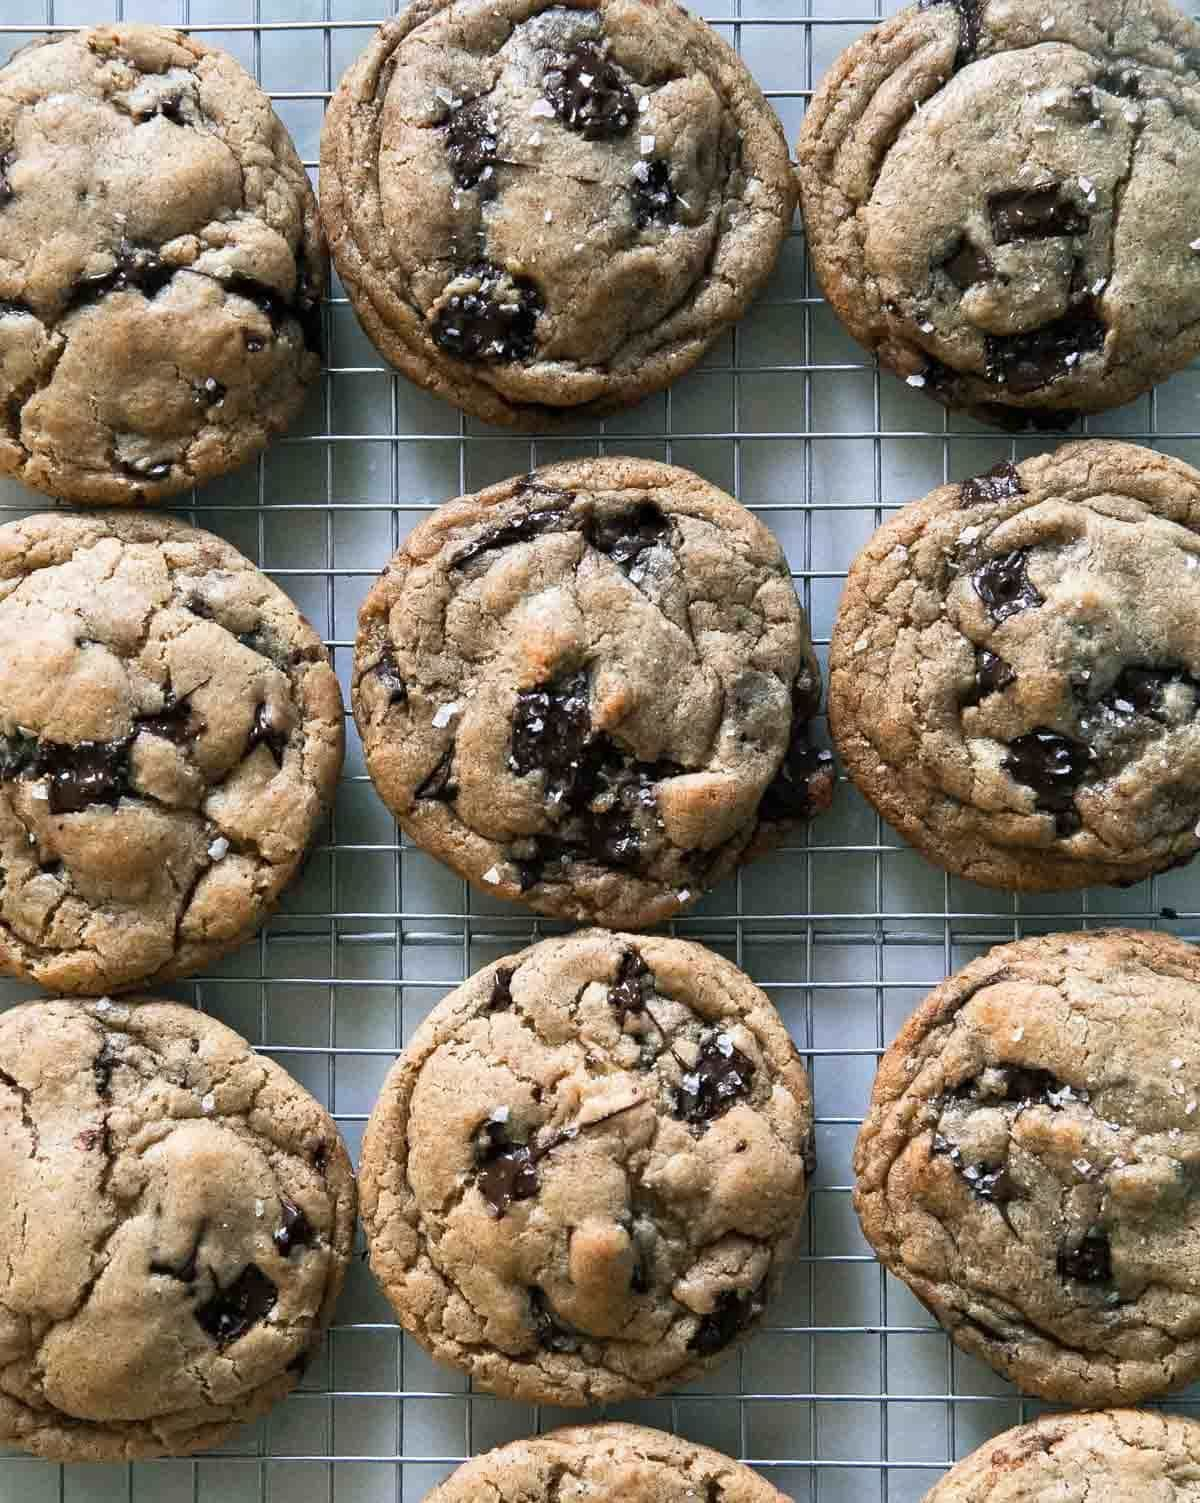 Vegan Chocolate Chip Cookies Recipe - A Cozy Kitch